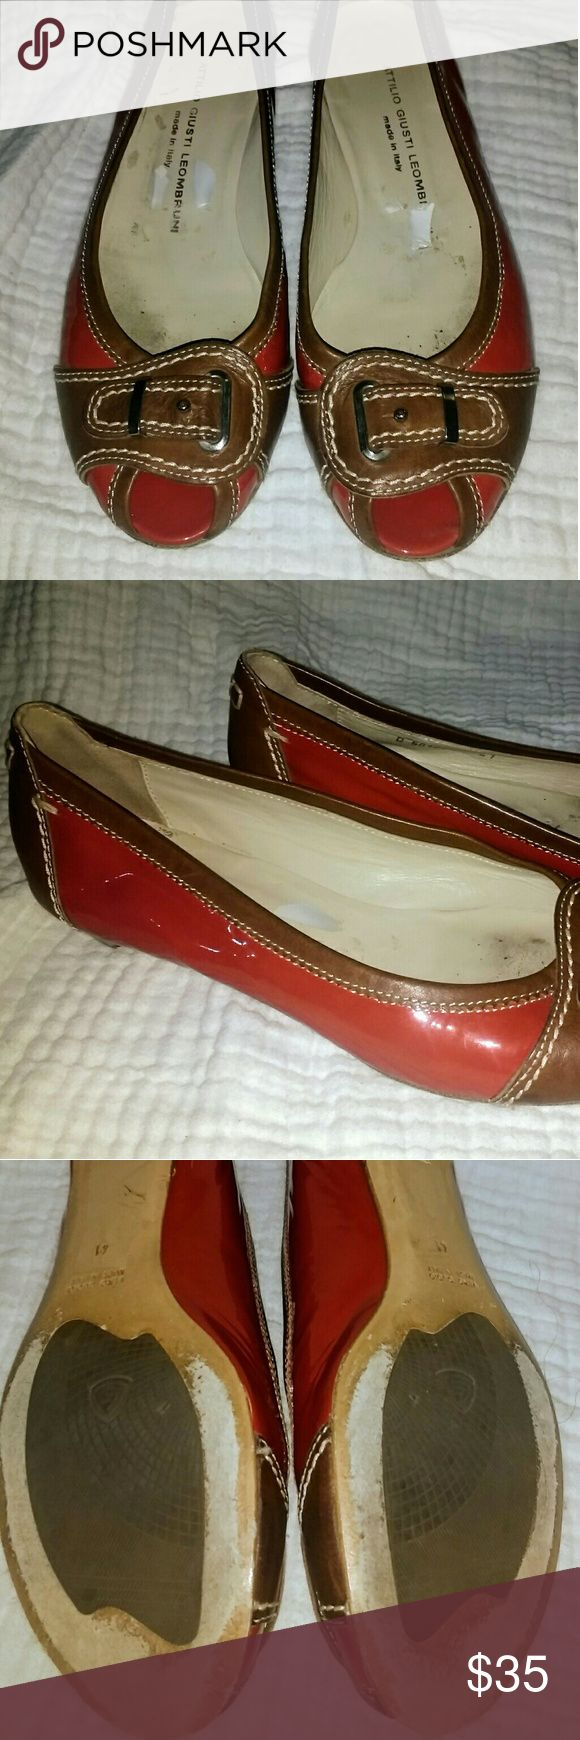 Attilio Giusto Leombruni peep toe flats Attilio Giusto Leombruni Italian made red parent leather and light brown peep toe flats with buckle and cream stitching. Very good used condition Attilio Giusto Leombruni Shoes Flats & Loafers